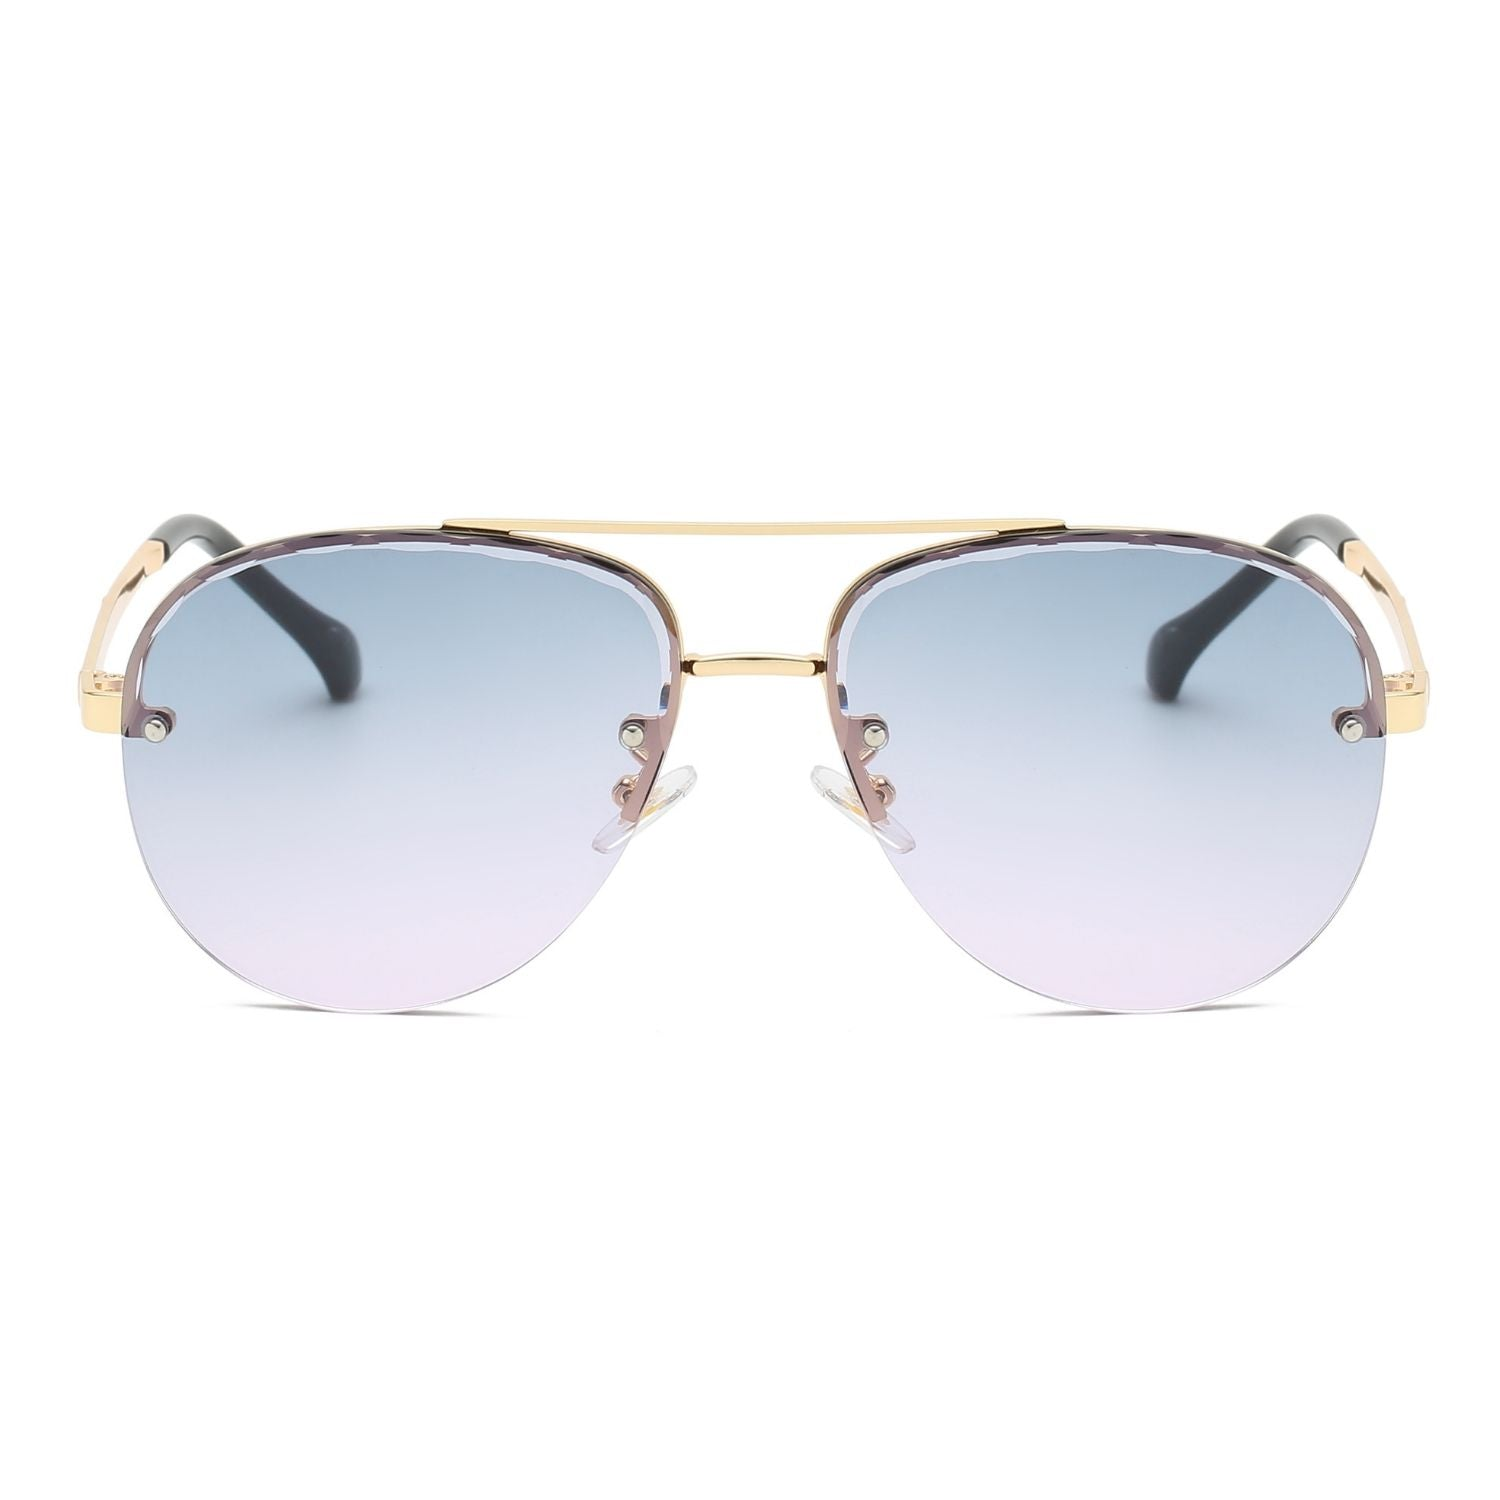 58163 - Classic Half Frame Anti-Reflective Aviator Fashion Sunglasses